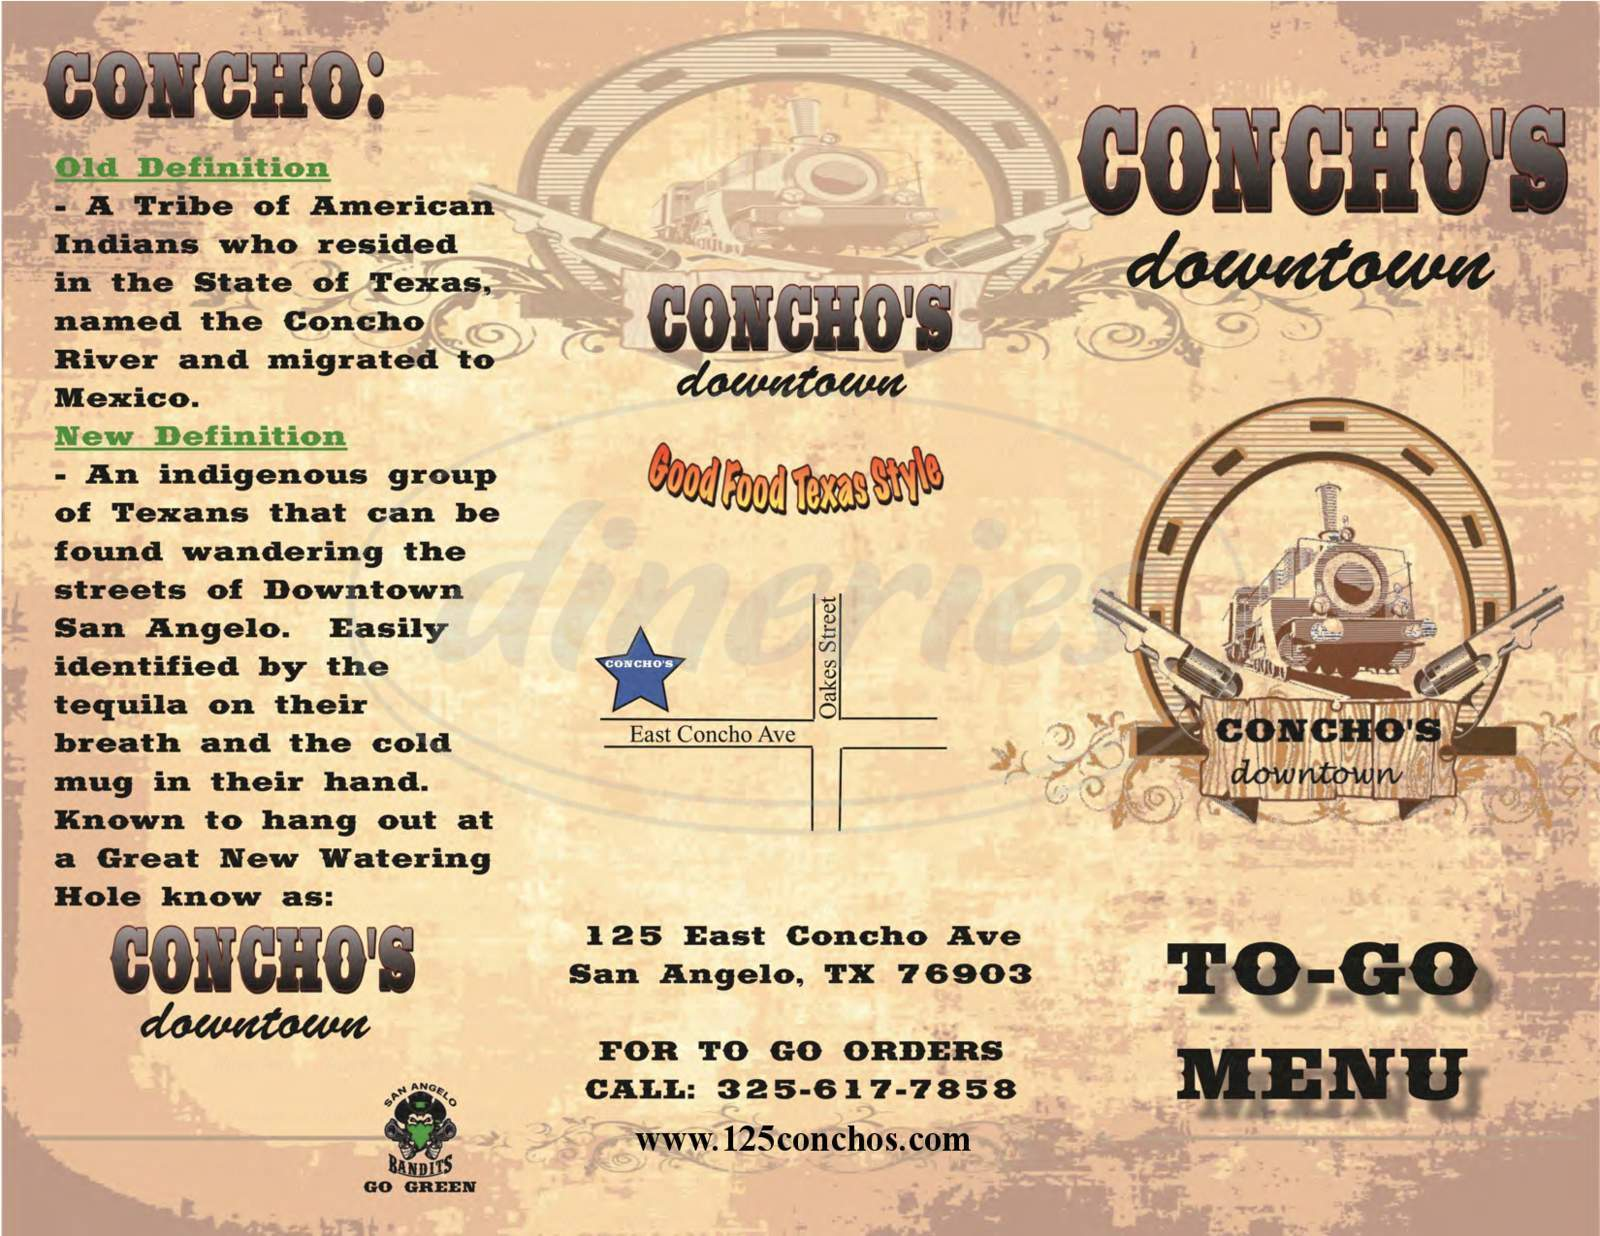 menu for Concho's Downtown